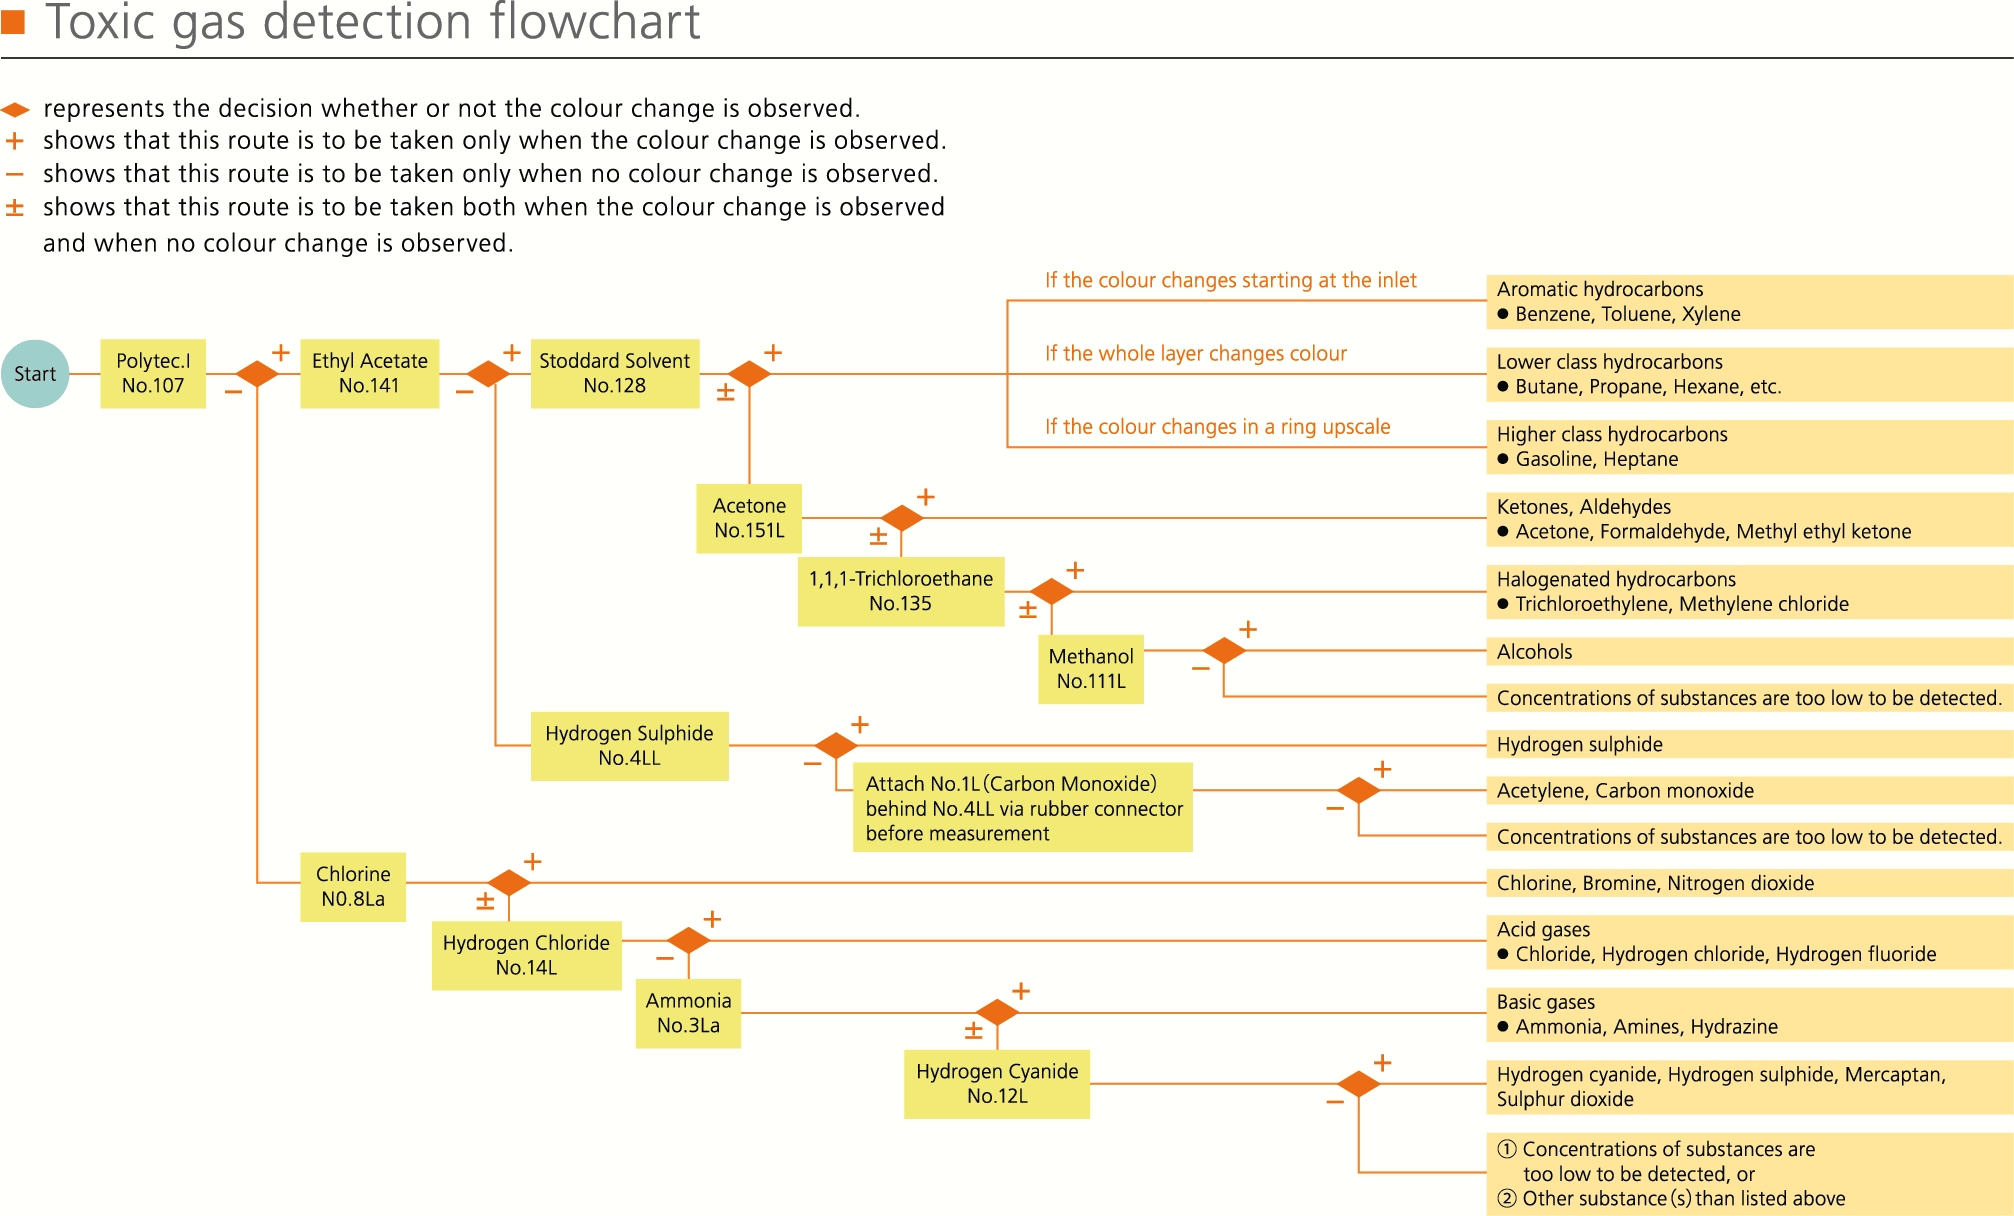 Toxic Gas Determination Flowchart